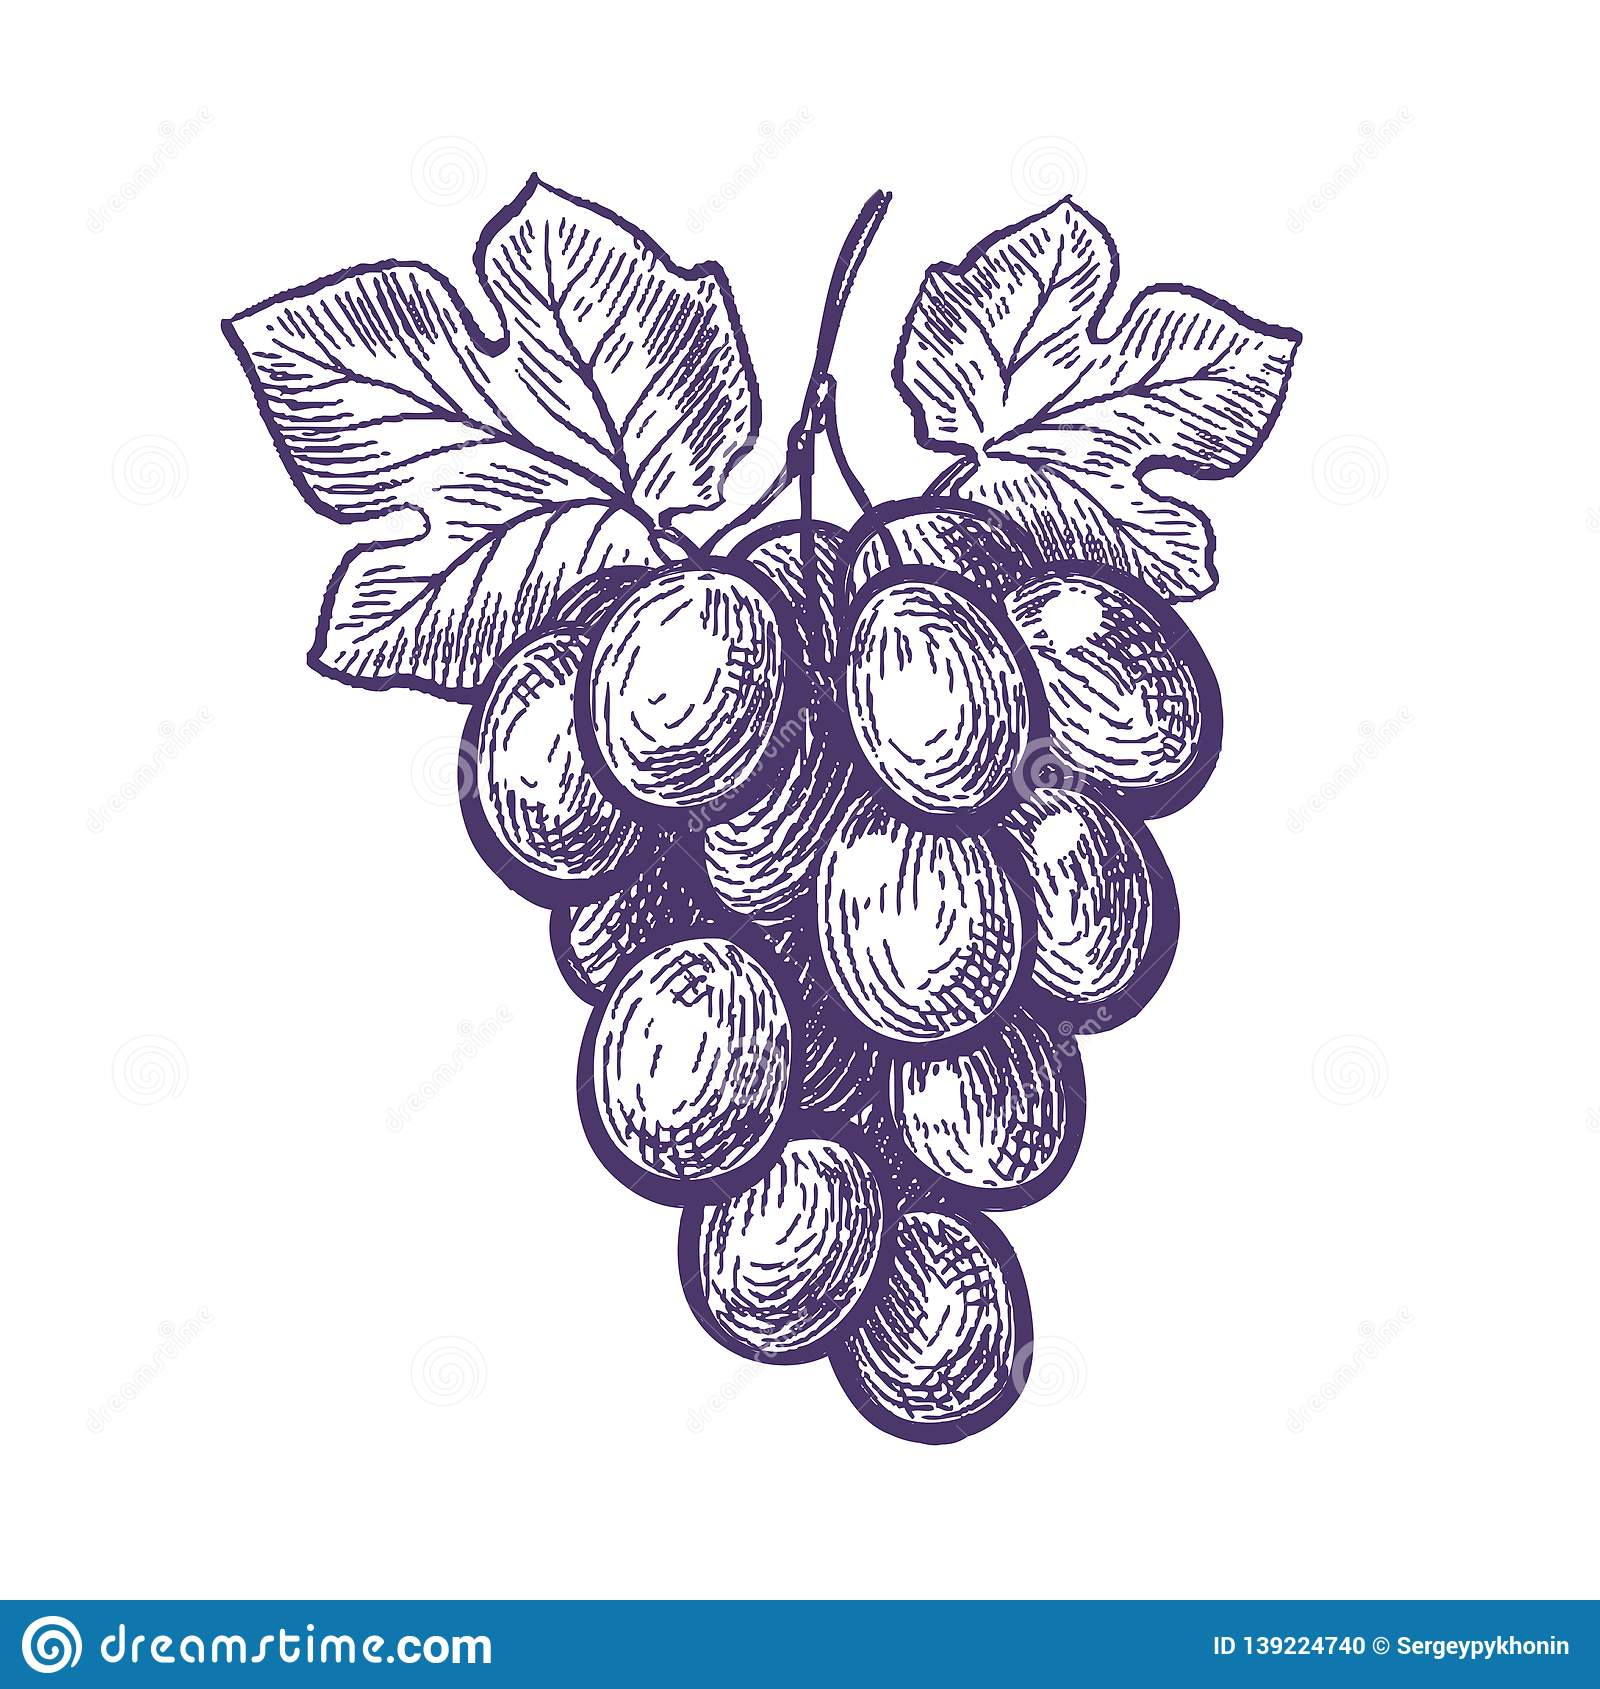 Hand Drawn Bunch Of Grapes Fruit Vineyard Wine Sketch Vintage Vector Illustration Stock Vector Illustration Of Graphic Grapevine 139224740